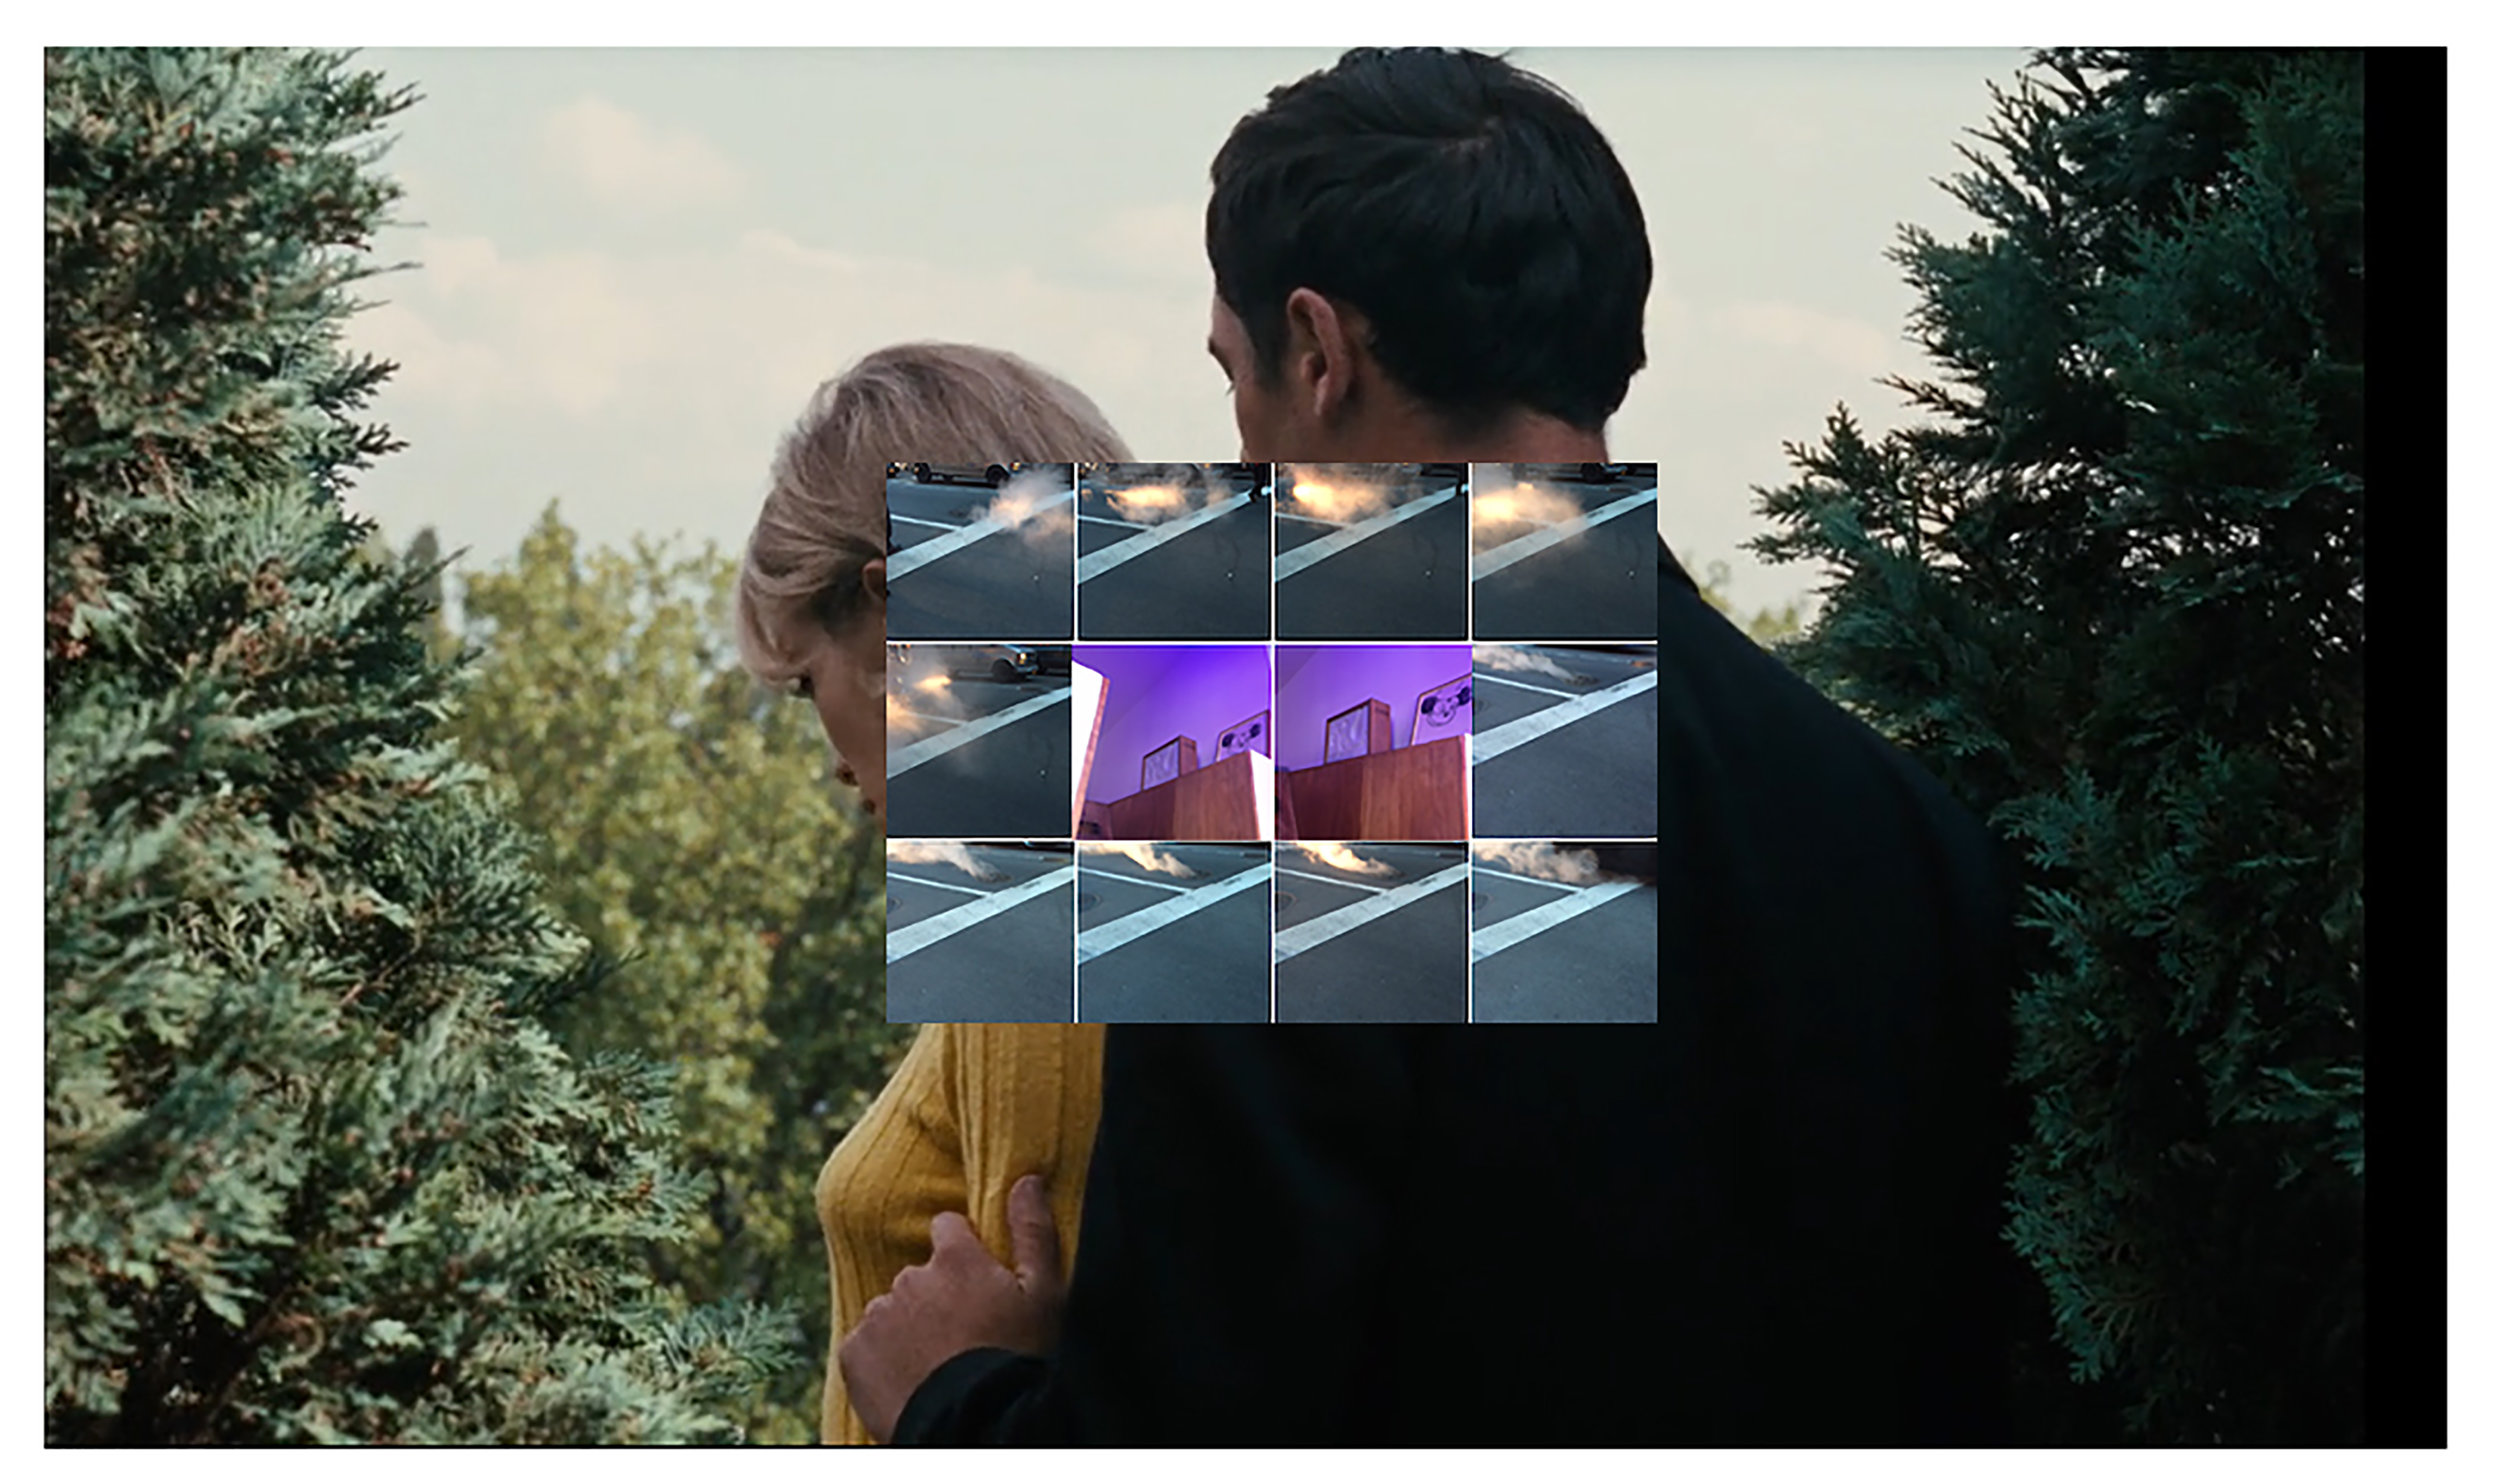 Que reste-t-il de nos amours? I    Weekend , Pigment Print, 18 x 11.01'', 2015.Collage work of: screenshot of film  Weekend  (1967) by Jean-Luc Godard; screenshot of my iPhone camera roll on November 30,2015.